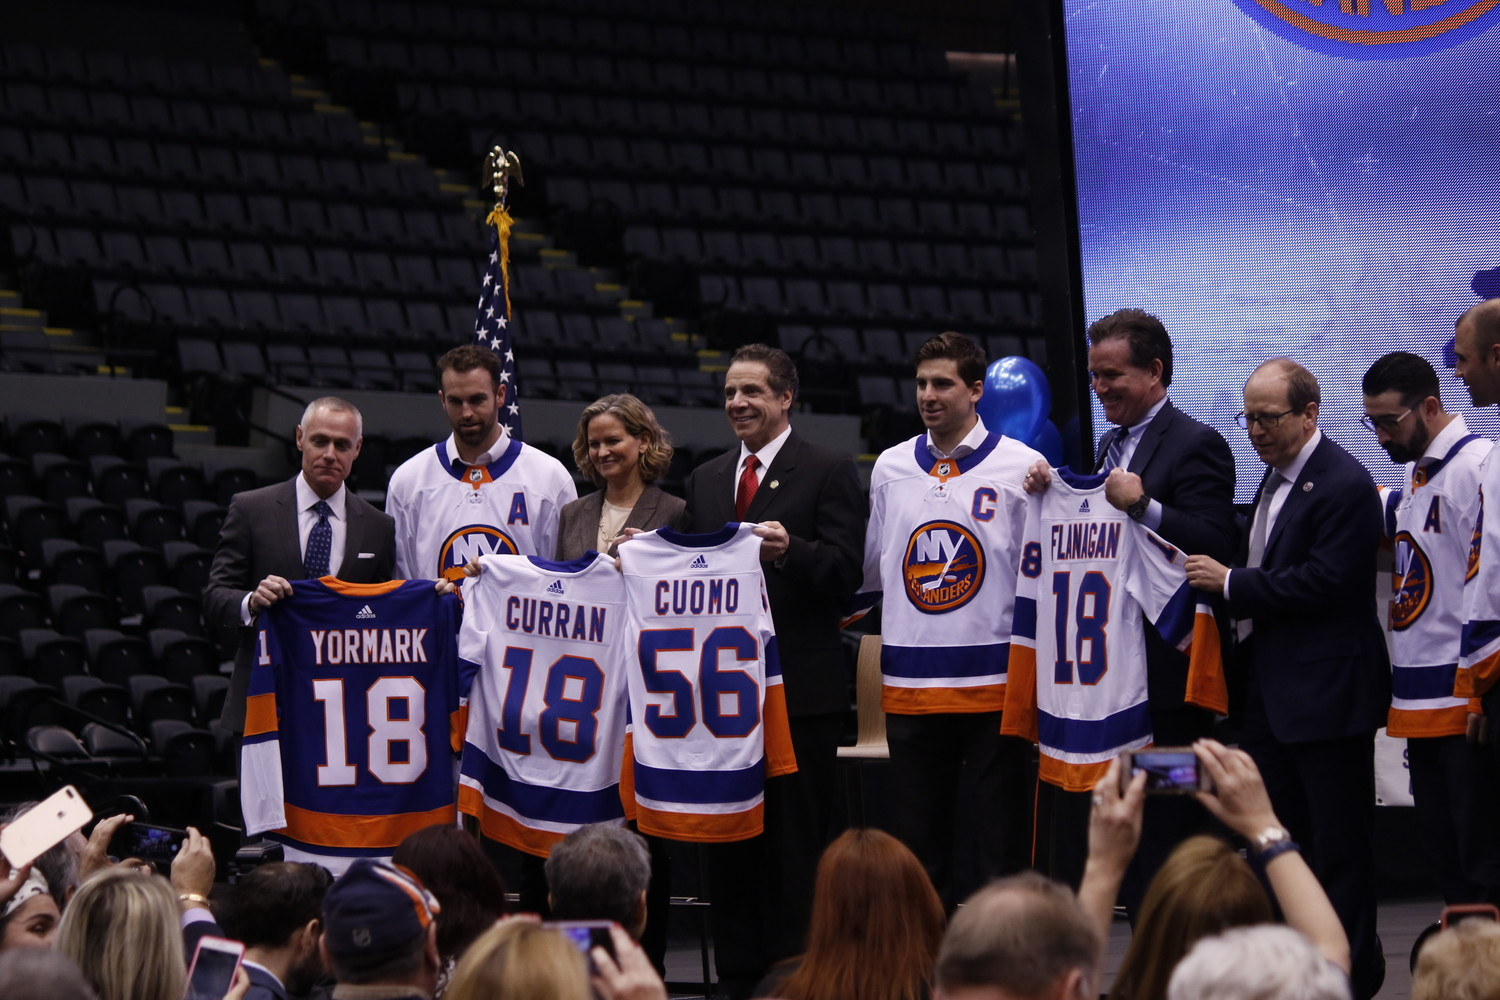 Brett Yormark, the CEO of Brooklyn Sports & Entertainment, left, County Executive Laura Curran, Gov. Andrew Cuomo and Senate Majority Leader John Flanagan were given honorary Islanders jerseys in honor of the team's return to Long Island. They were accompanied by Islanders co-owner Jon Ledecky and several players.